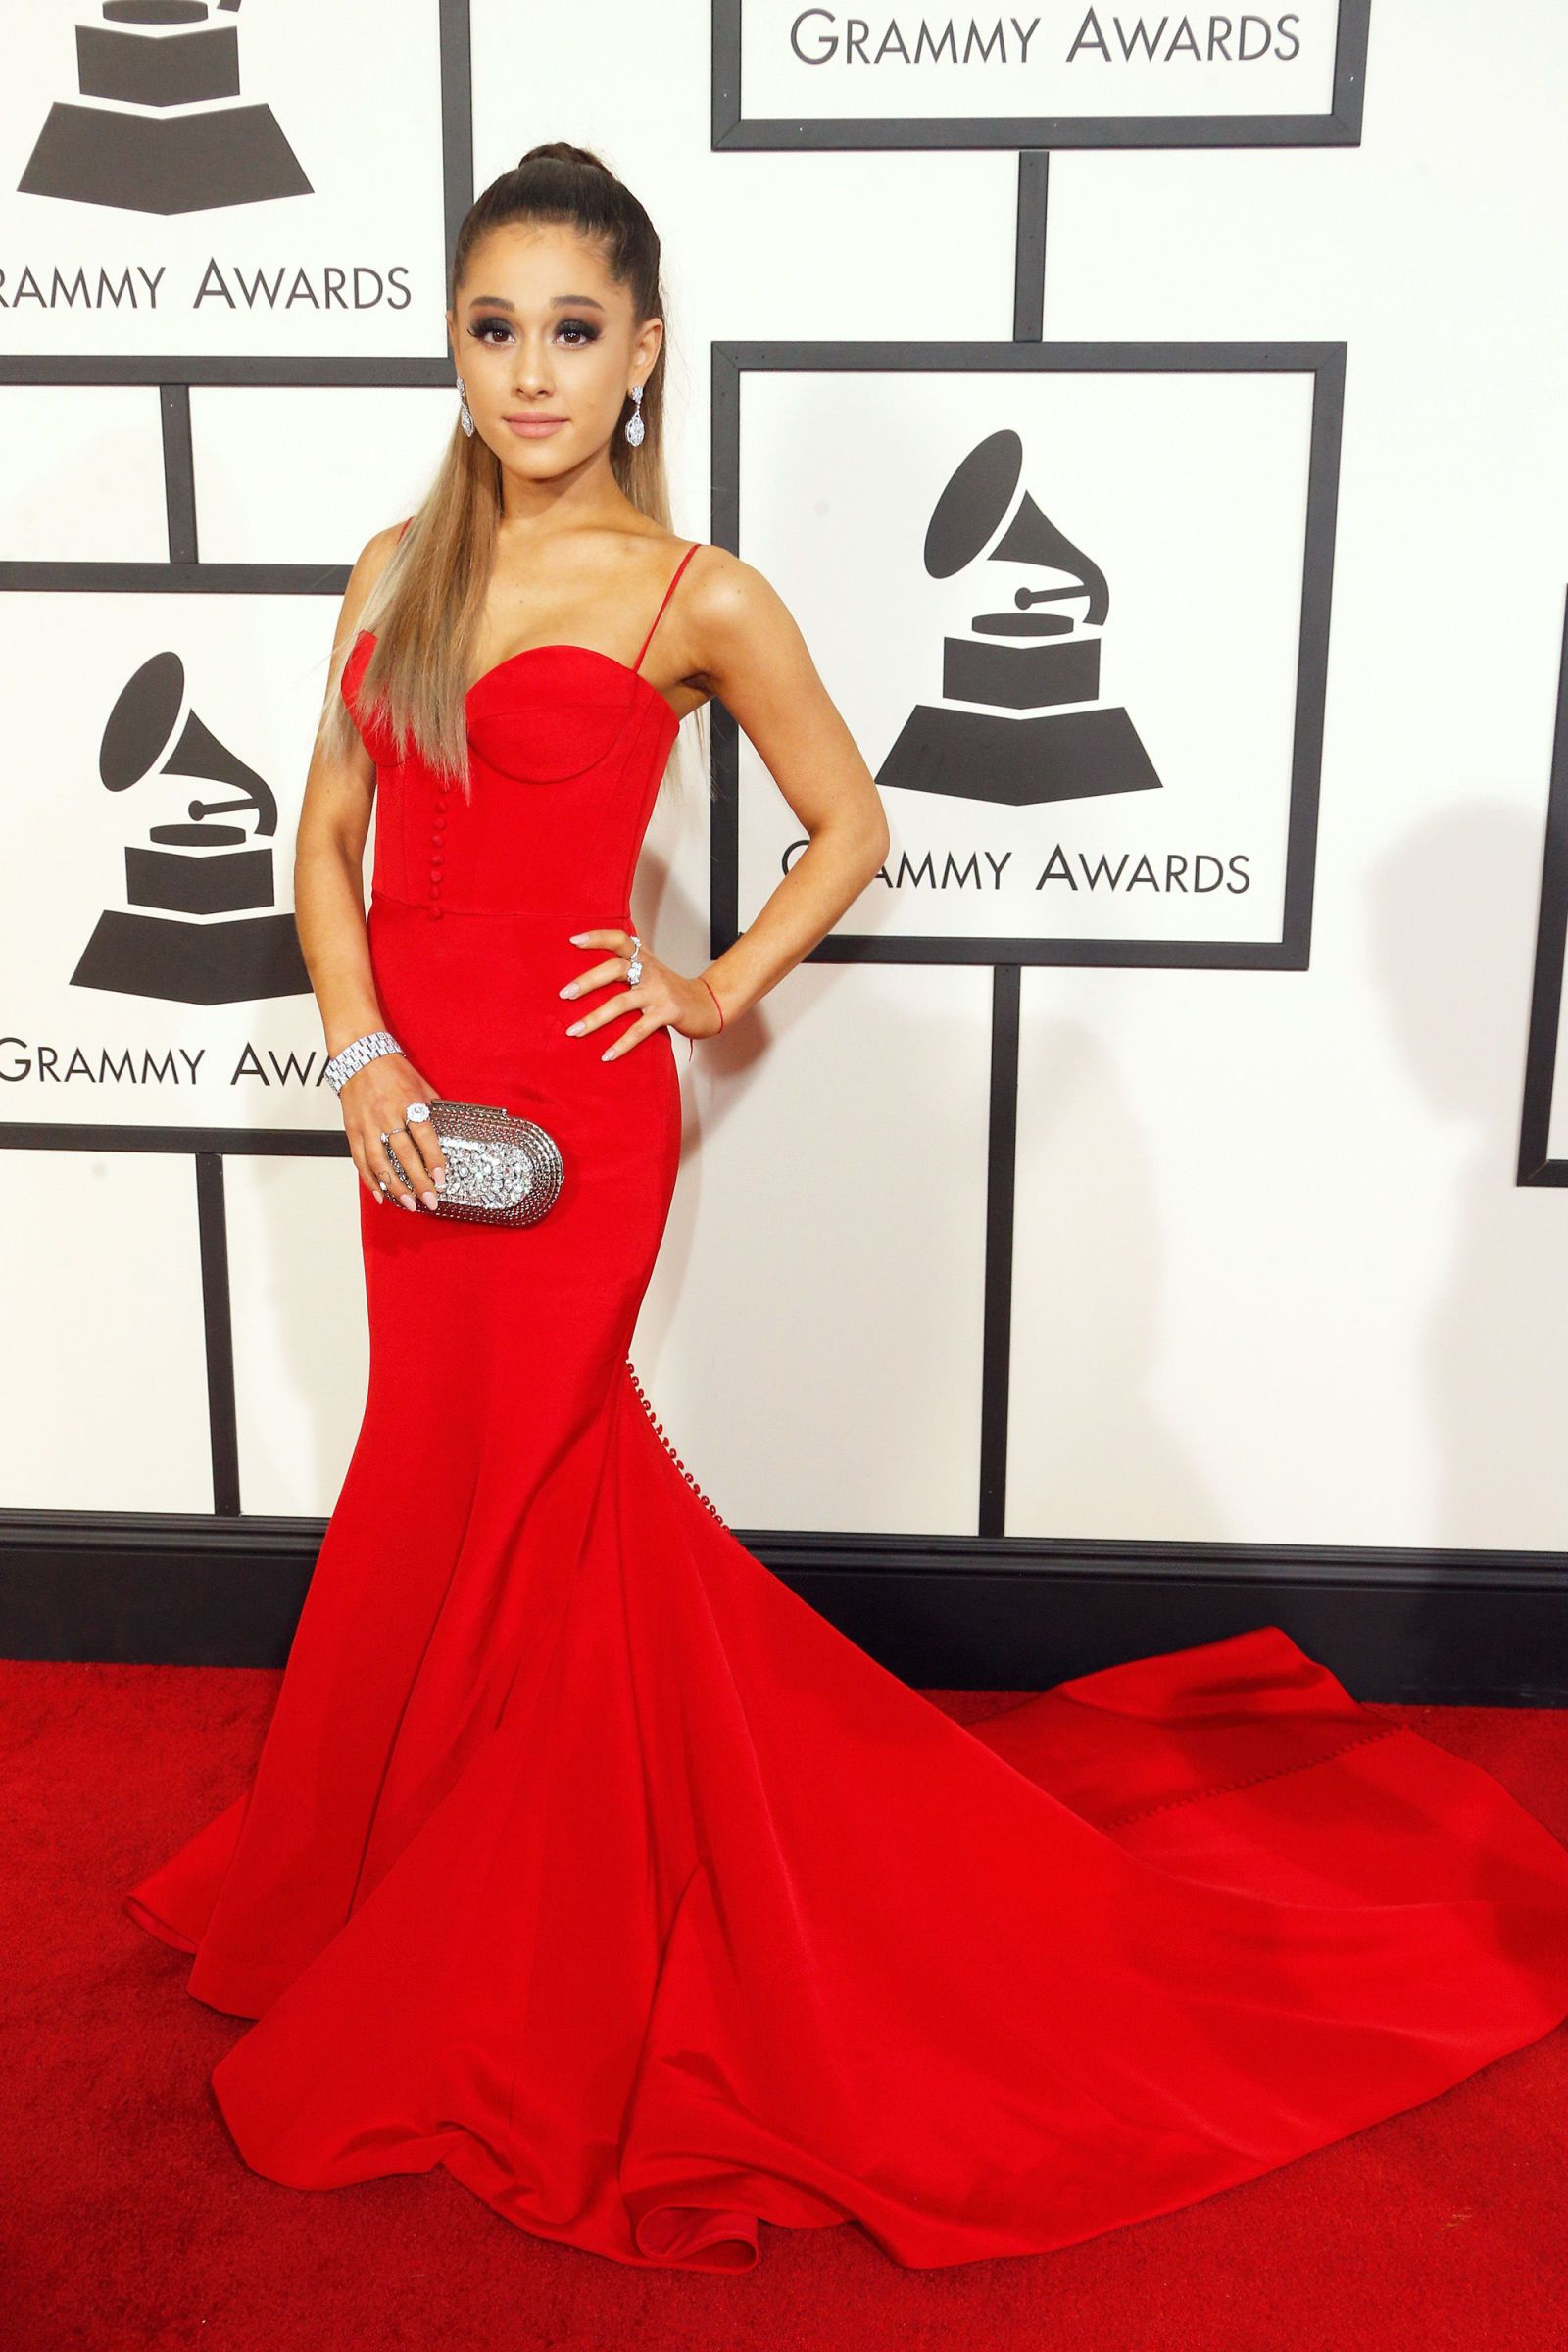 Outfits Roter Teppich Ariana Grande 39s Grammys Look Is Basically The Red Dress